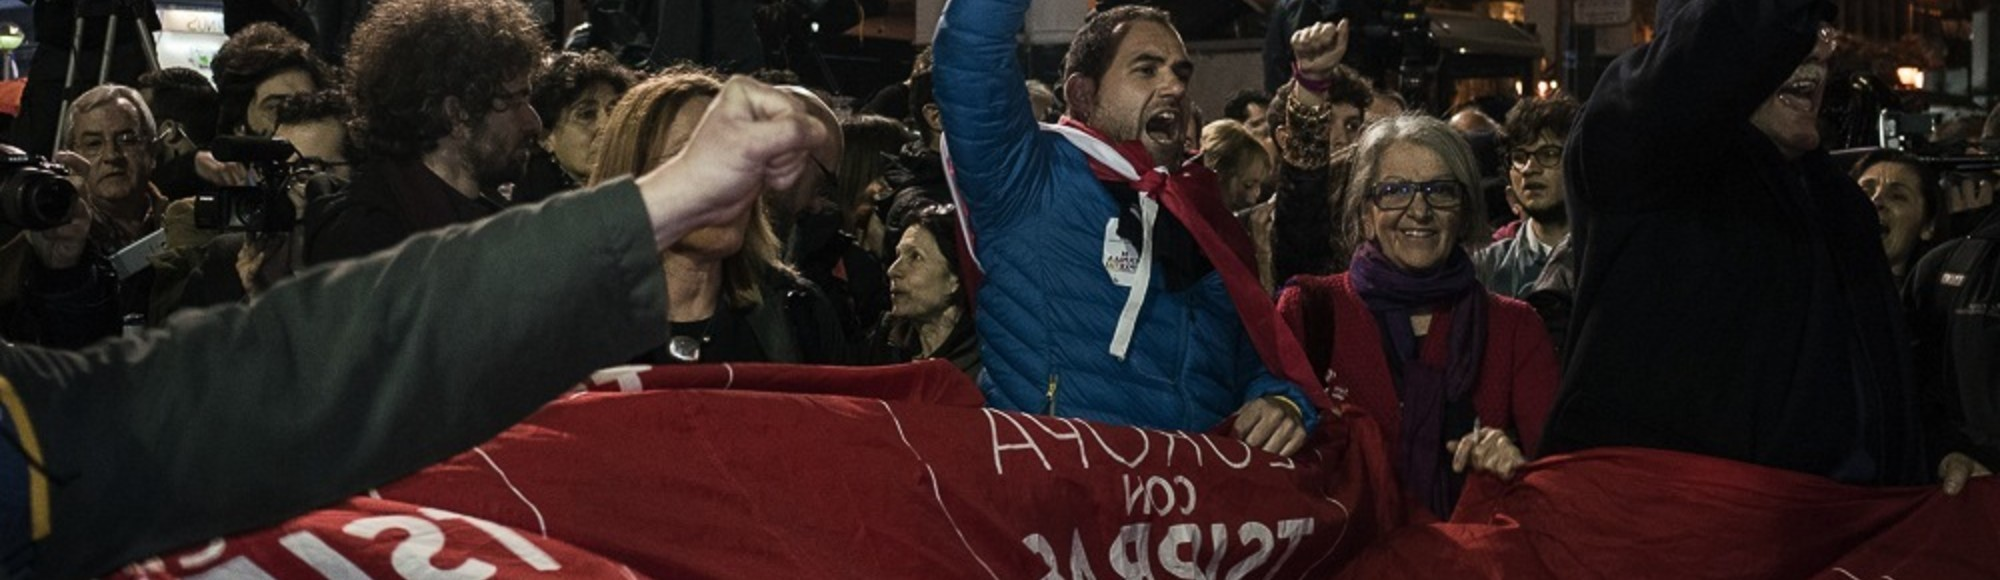 Greeks Celebrate the Country's Historic Left-Wing Election Win